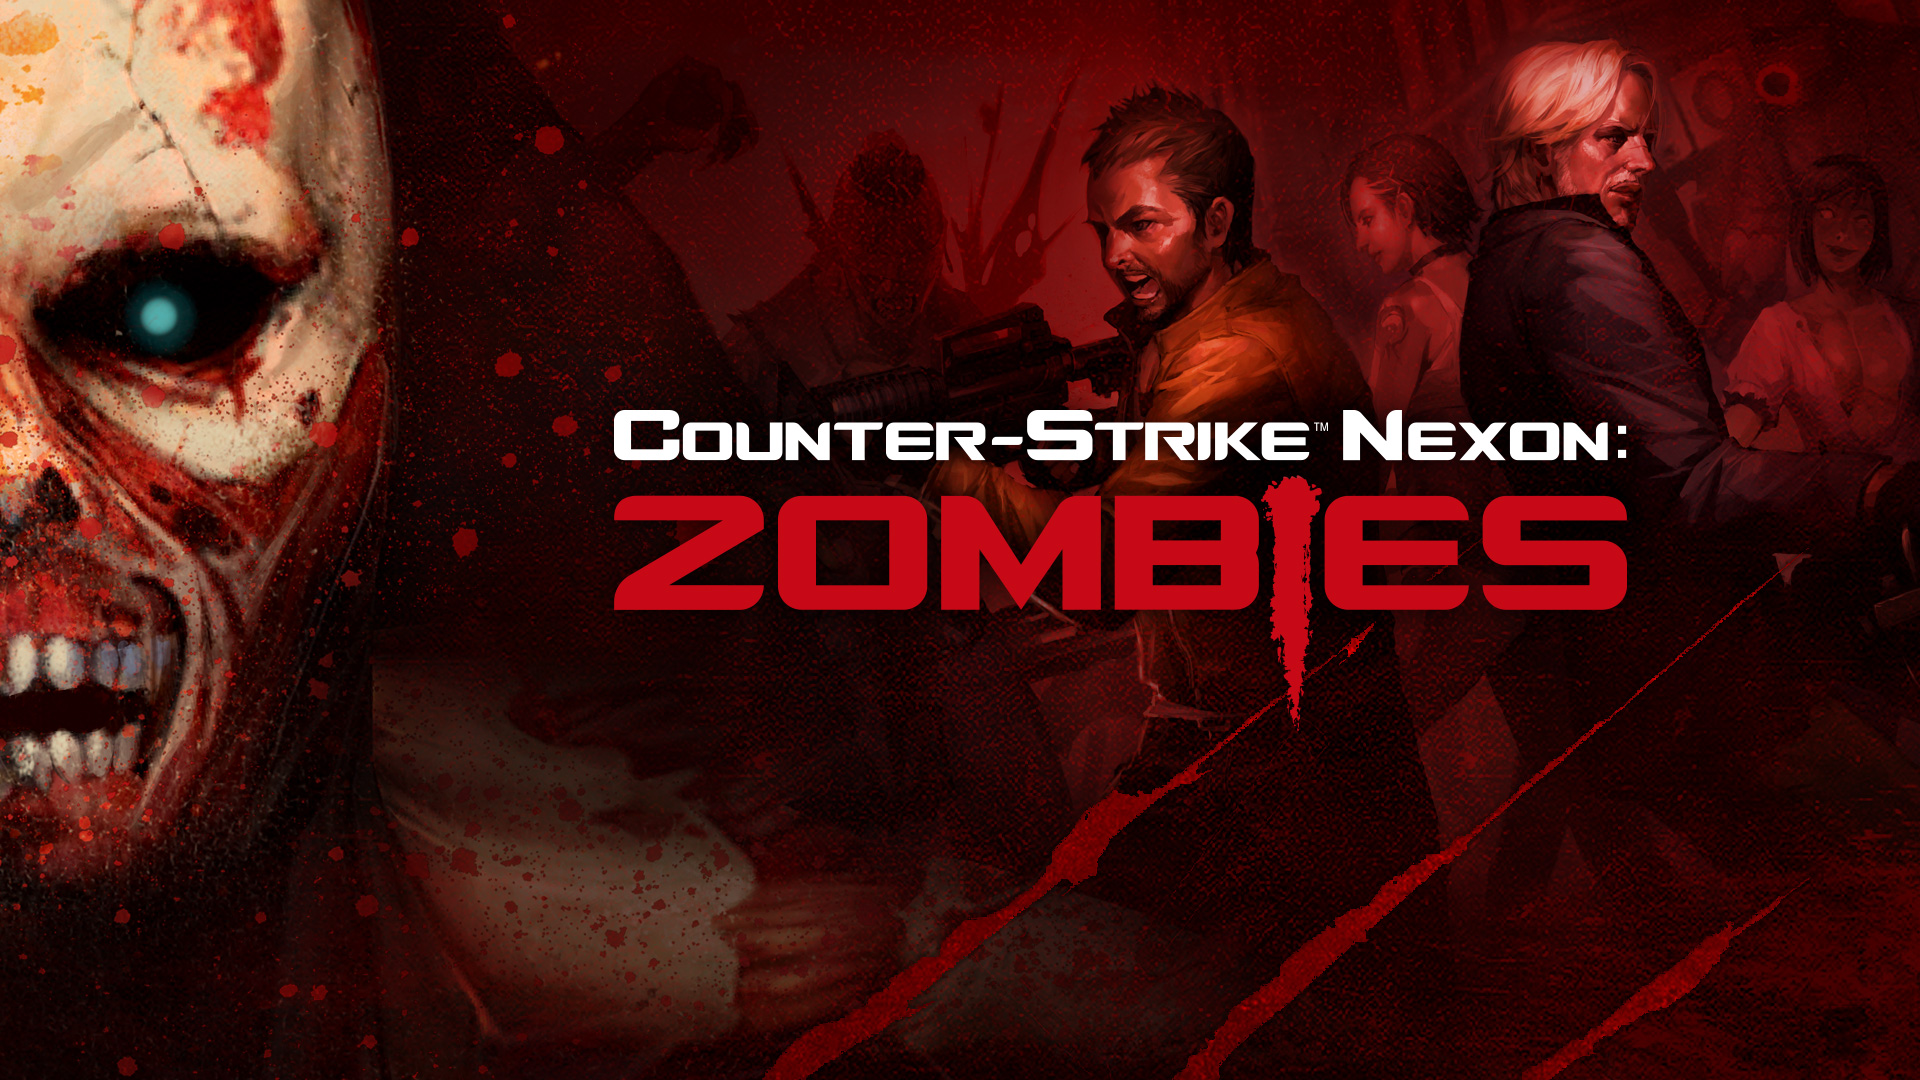 Counter-Strike-Nexon-Zombies_Key-visual